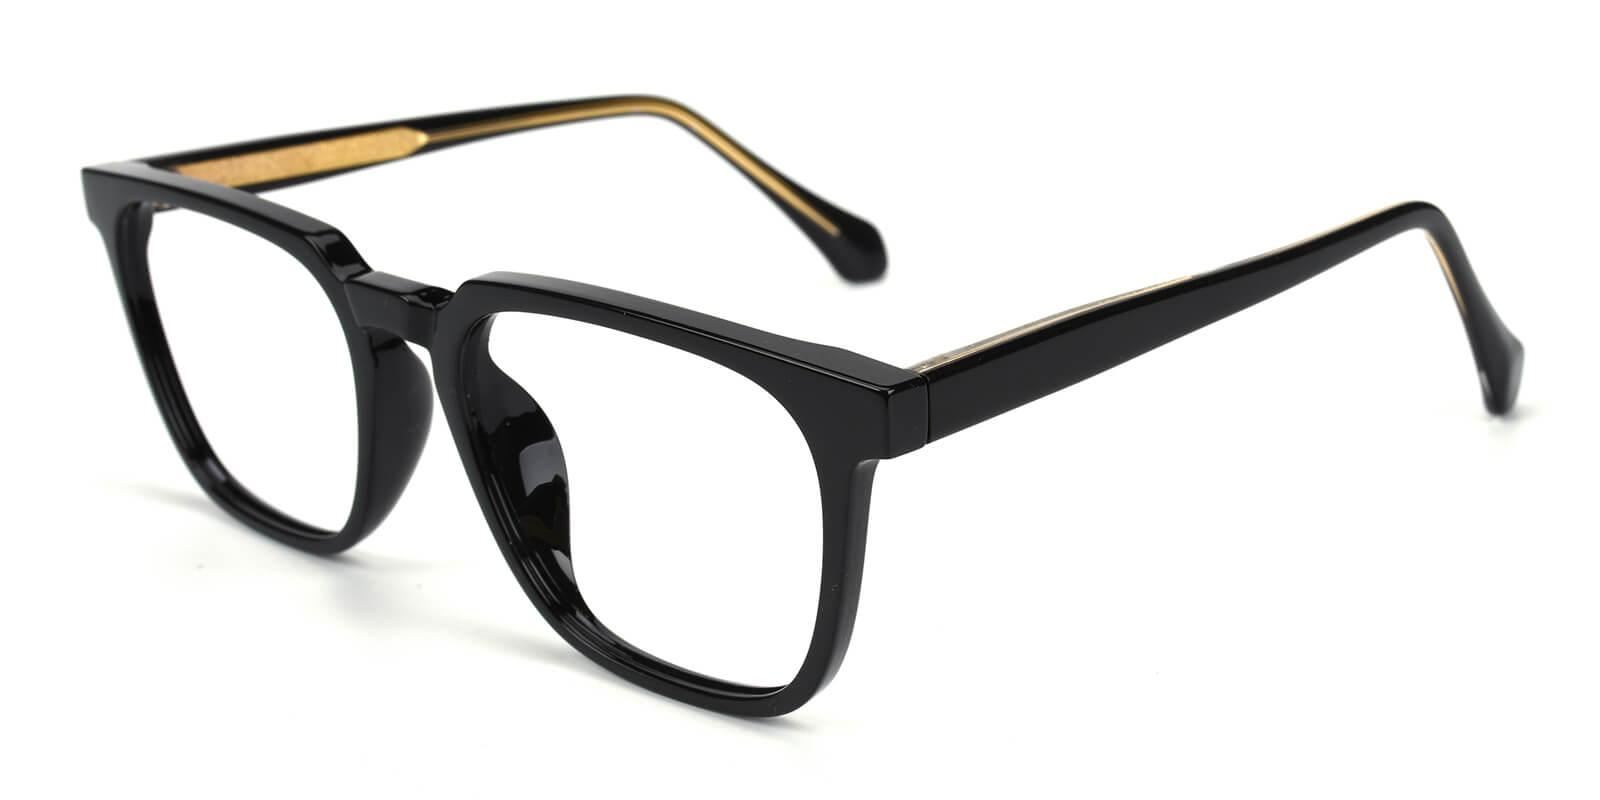 Gekay-Black-Square-Acetate-Eyeglasses-detail